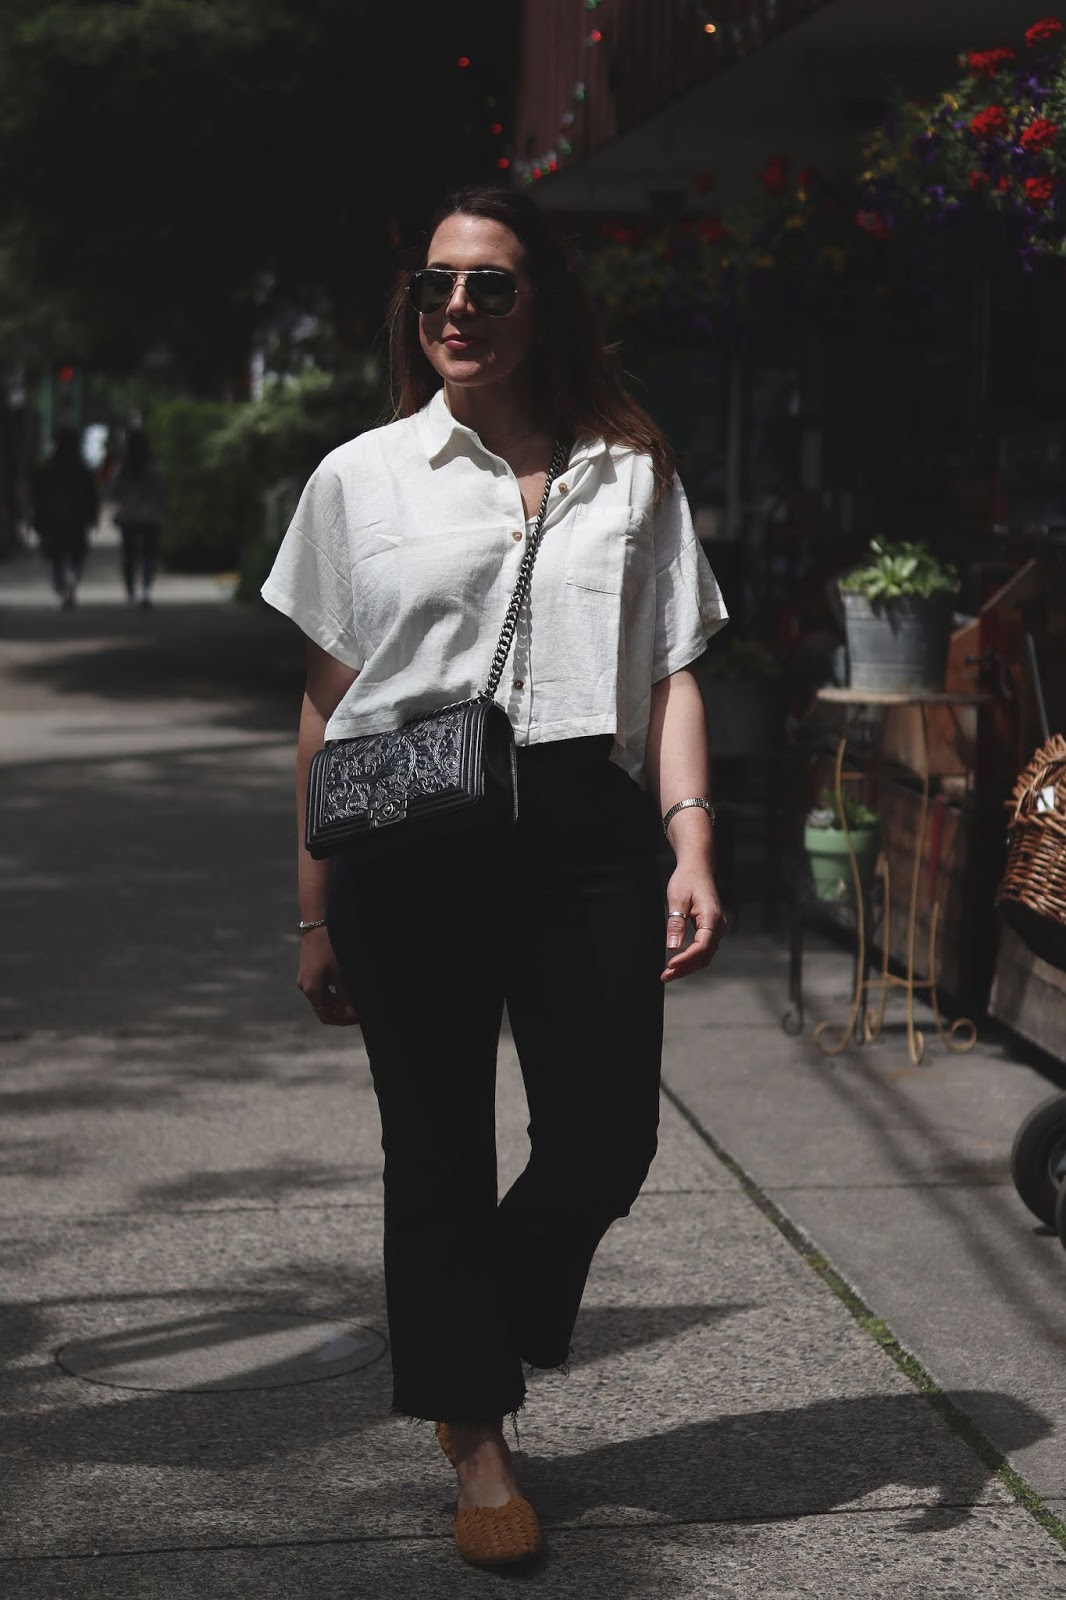 levis ribcage jean blogger outfit linen shirt vancouver fashion blogger chanel boy bag